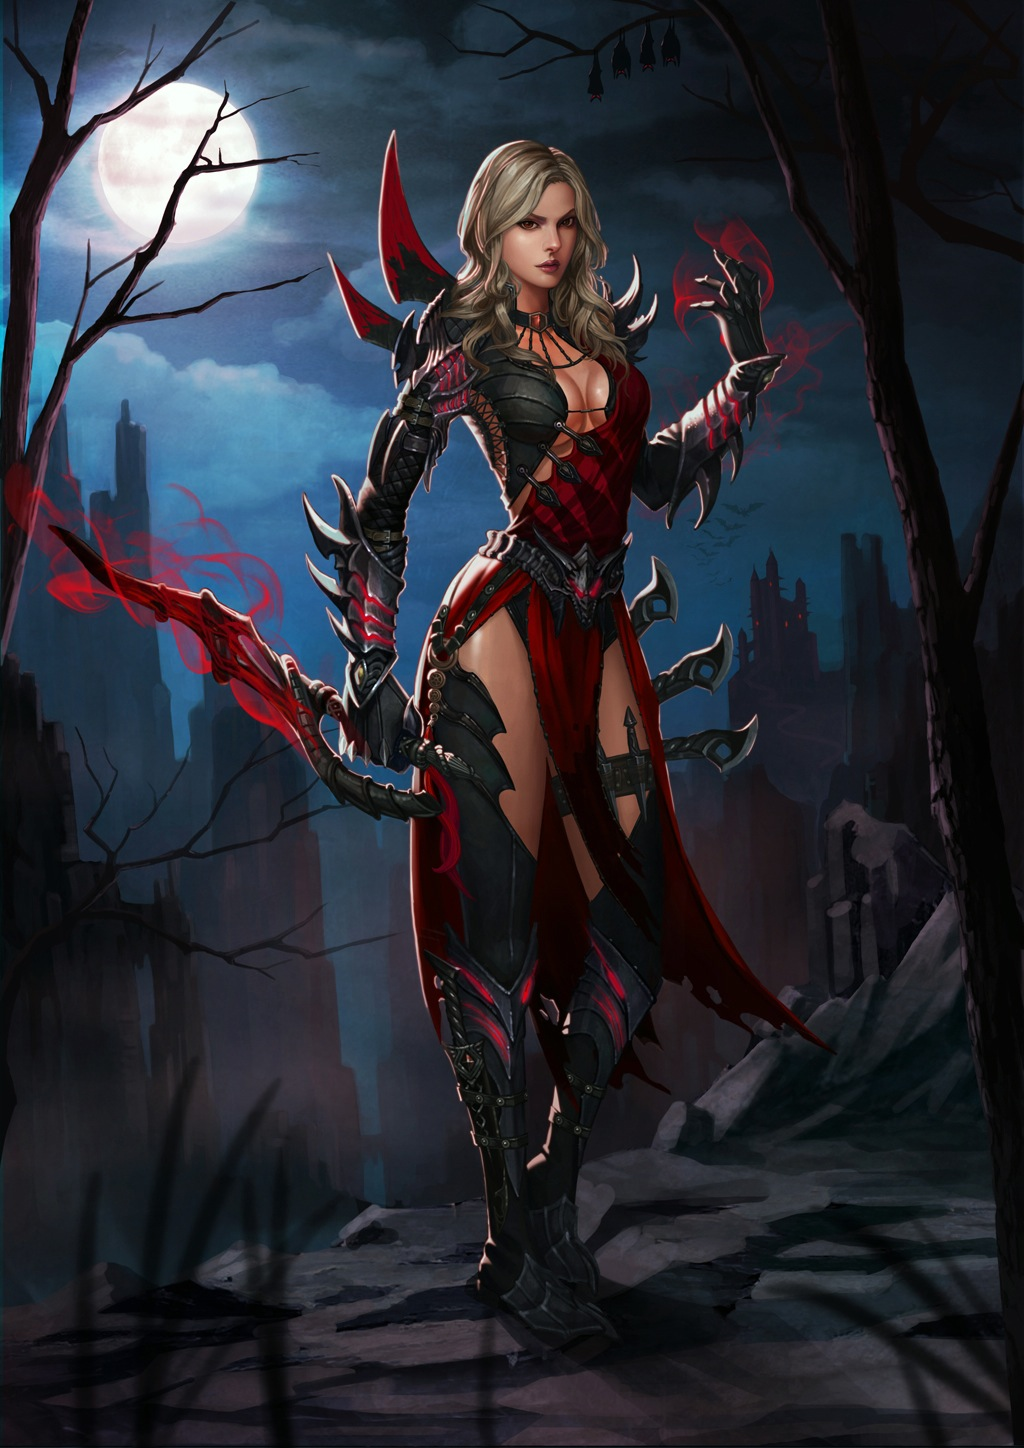 Night elves vs blood elves erotic extreme women